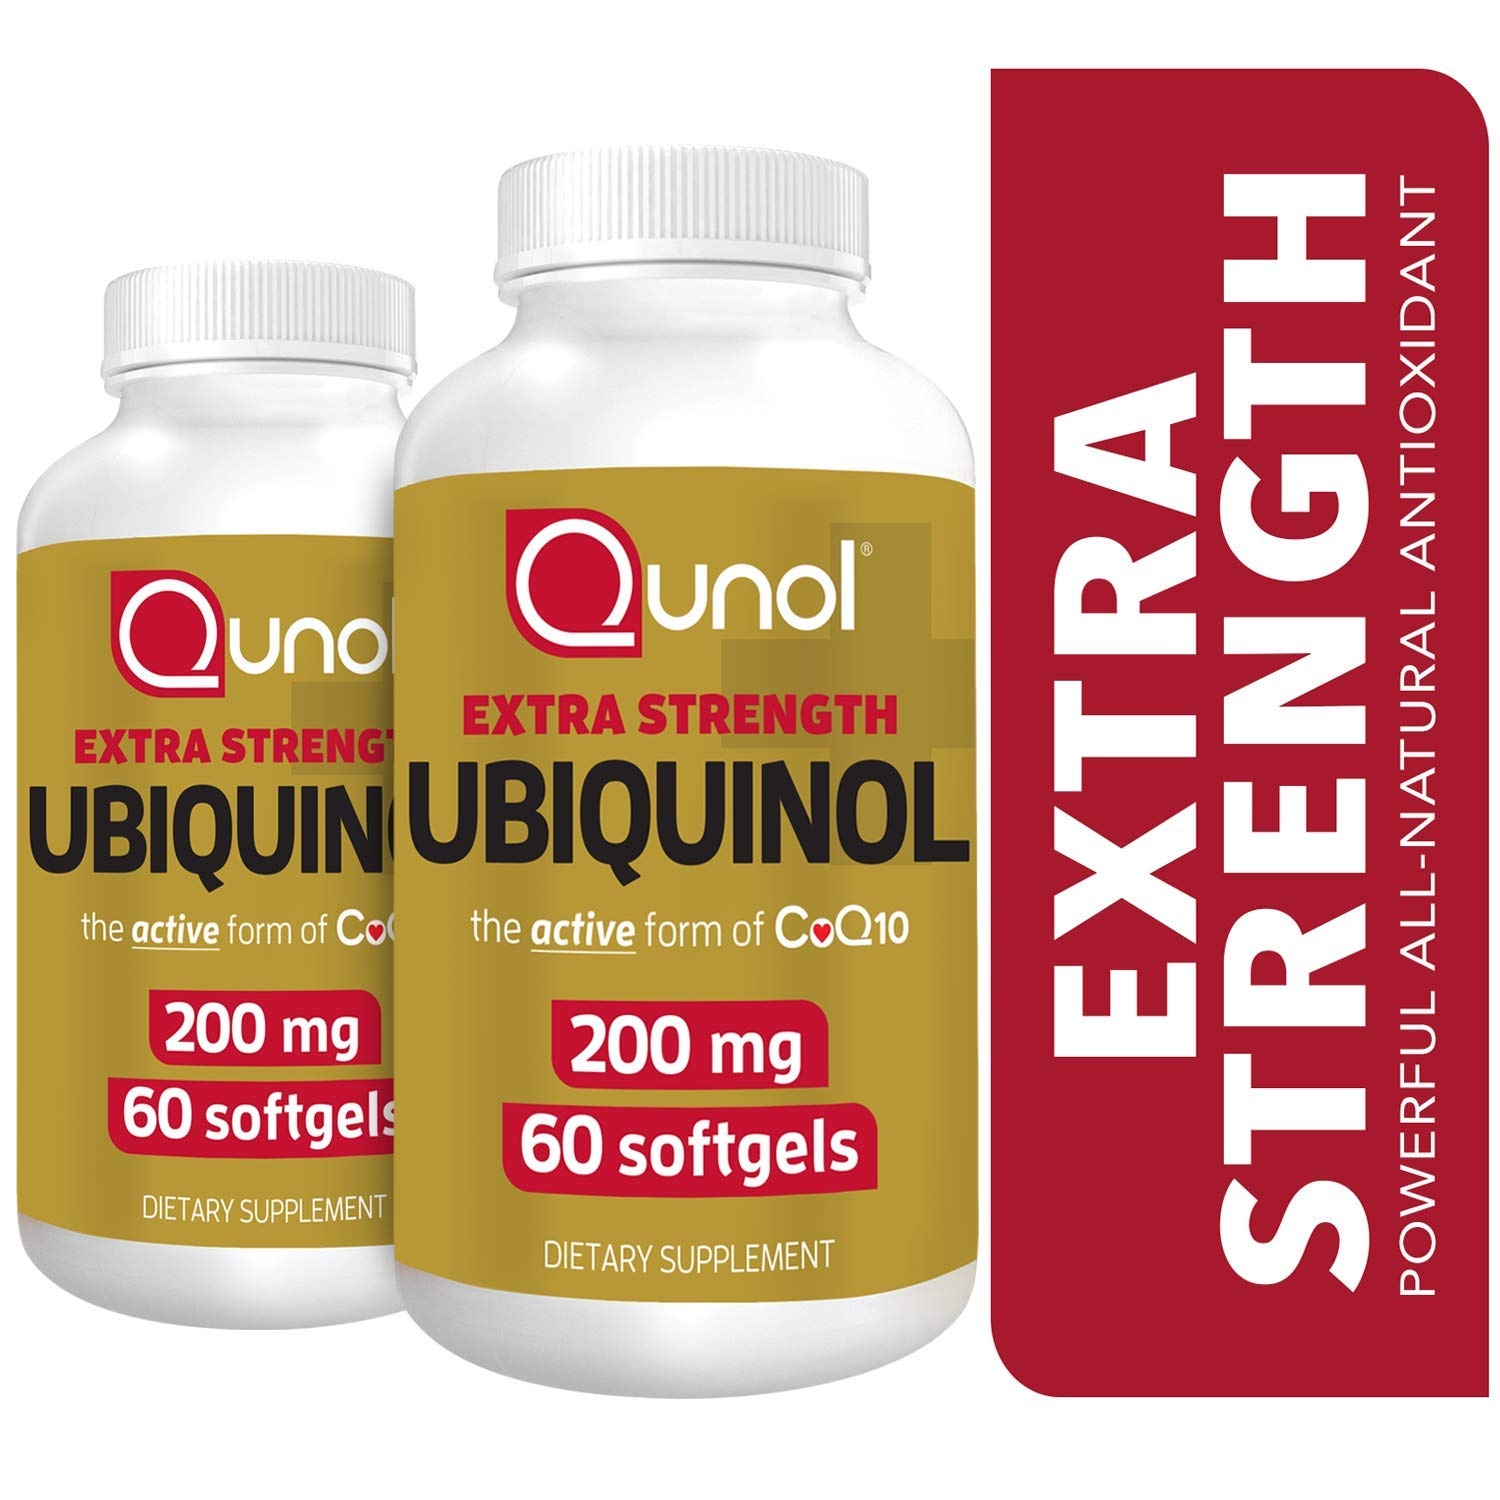 Qunol Ubiquinol 200mg, Powerful Antioxidant for Heart and Vascular Health, Essential for Energy Production, Natural Supplement Active Form of CoQ10, 60 Count Twin Pack by Qunol